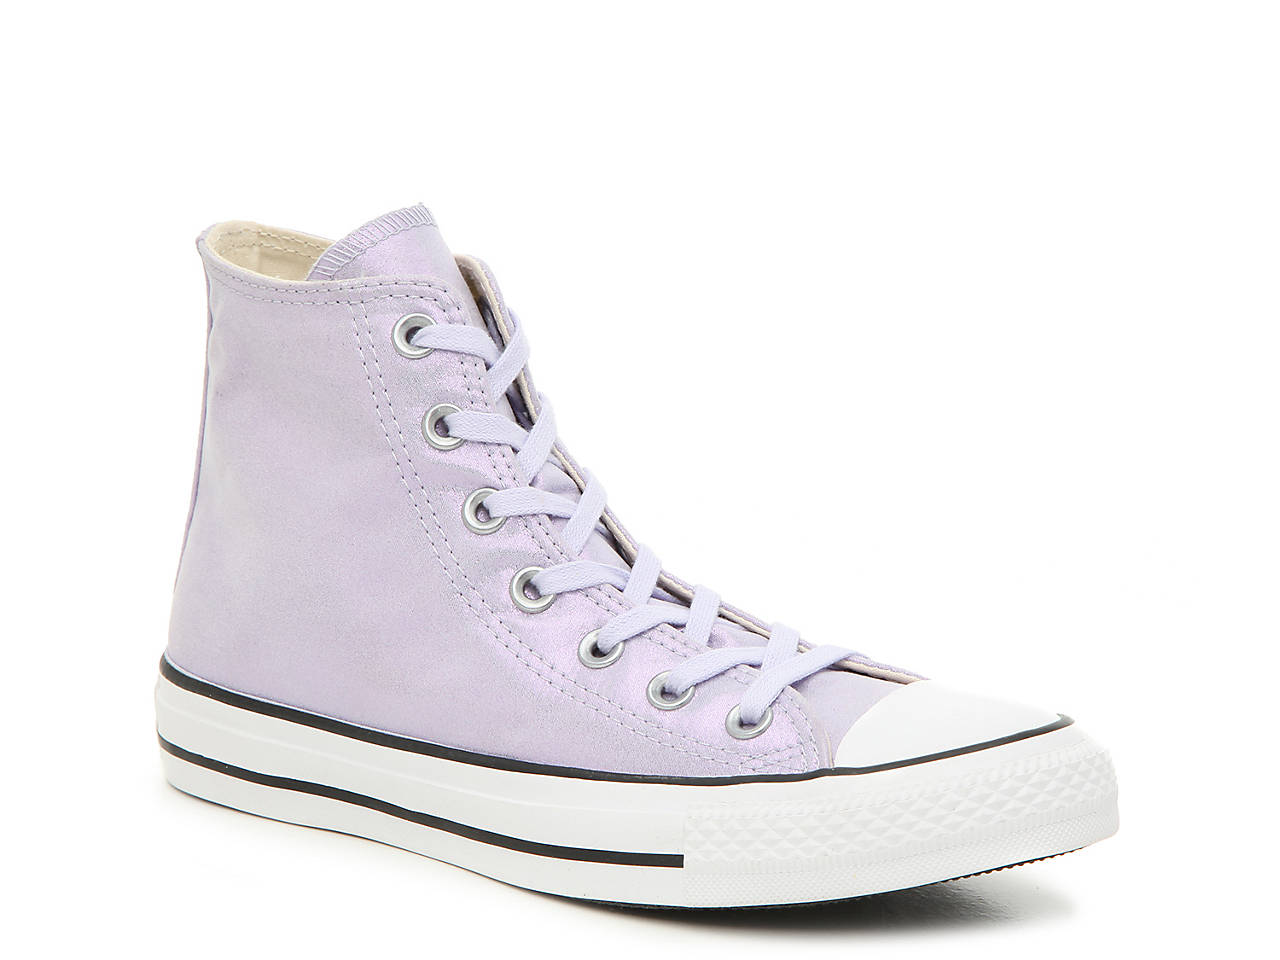 52d75f5f7e81 Converse Chuck Taylor All Star Twilight High-Top Sneaker - Women s ...